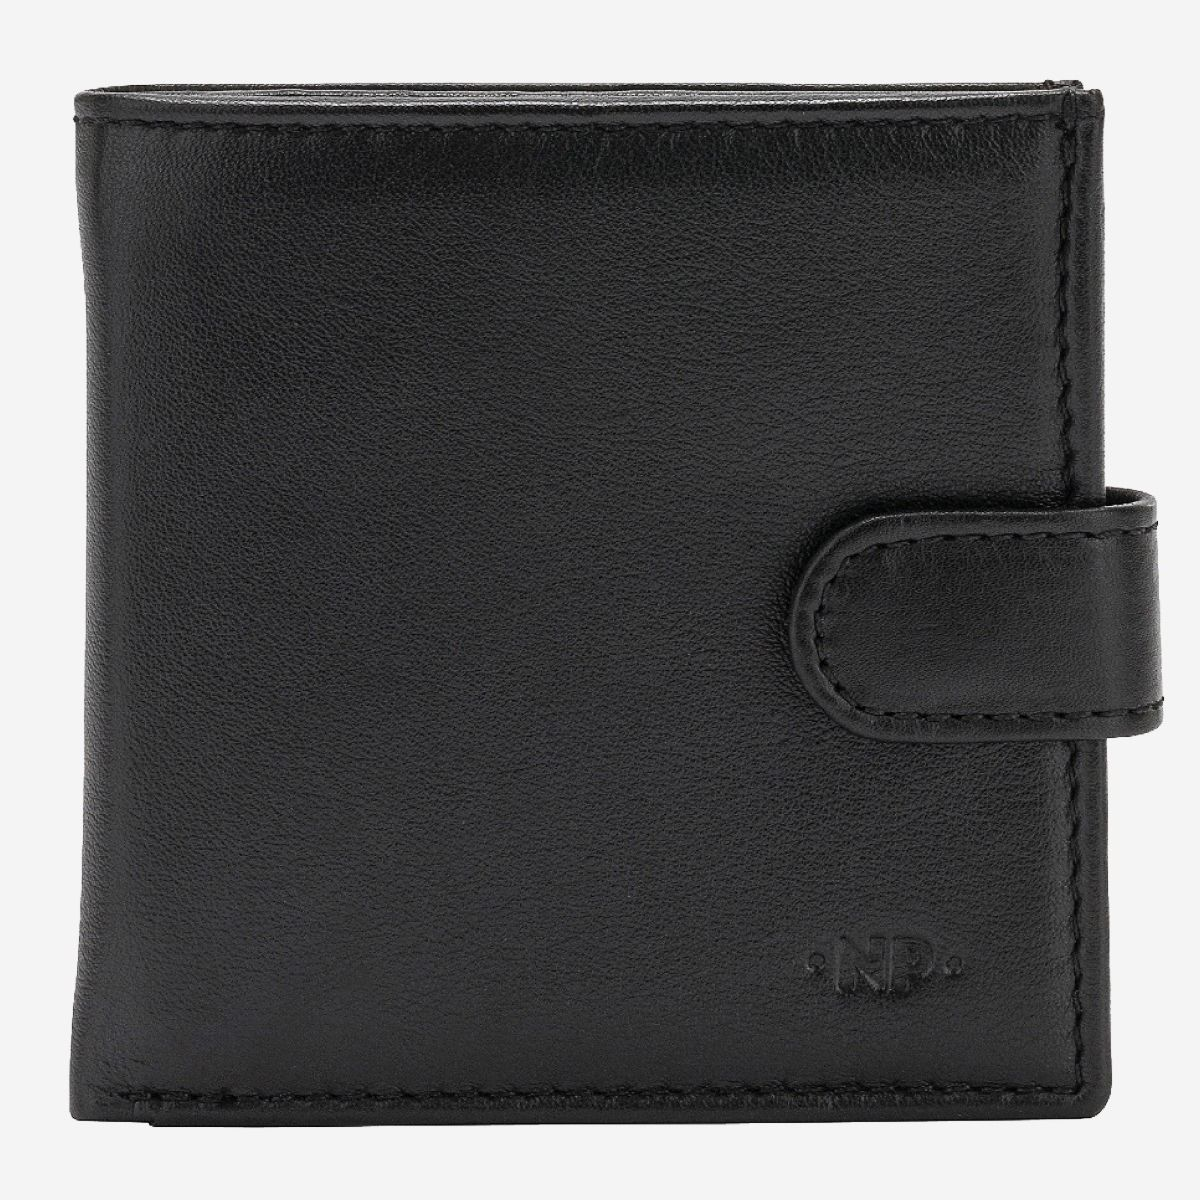 NUVOLA PELLE Mens Leather Wallet With Snap Closure Nappa - Black